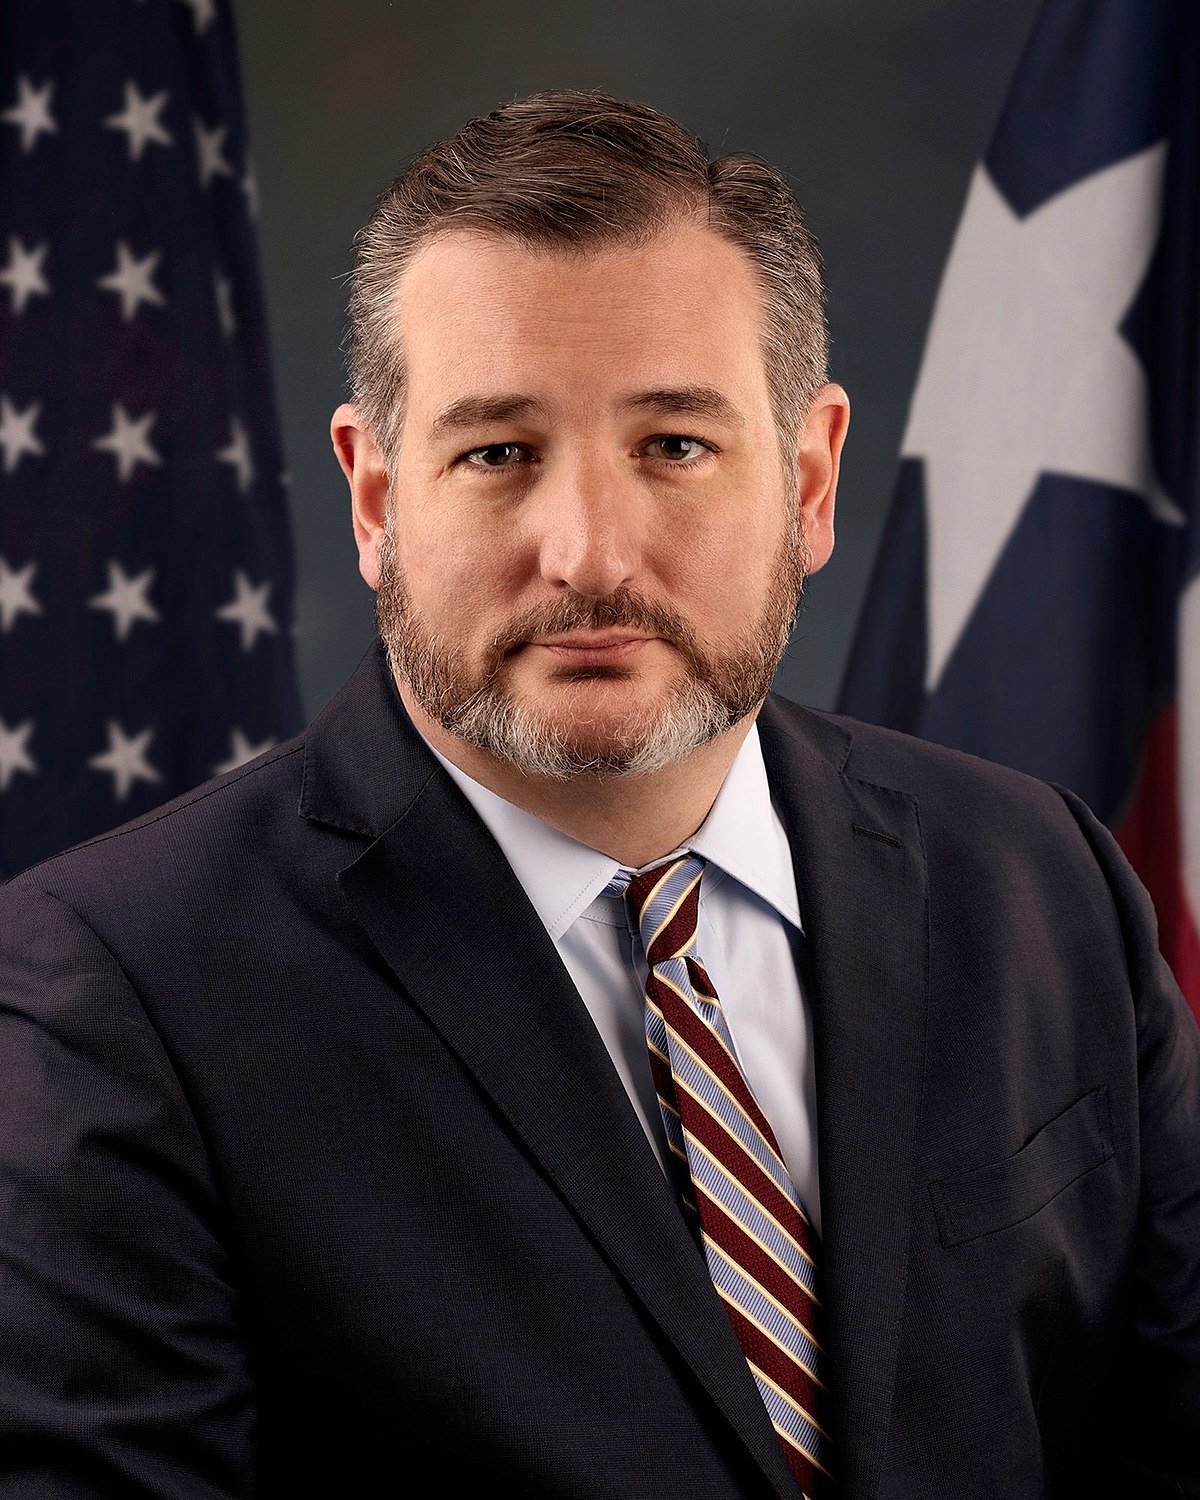 Ted Cruz - Wikipedia